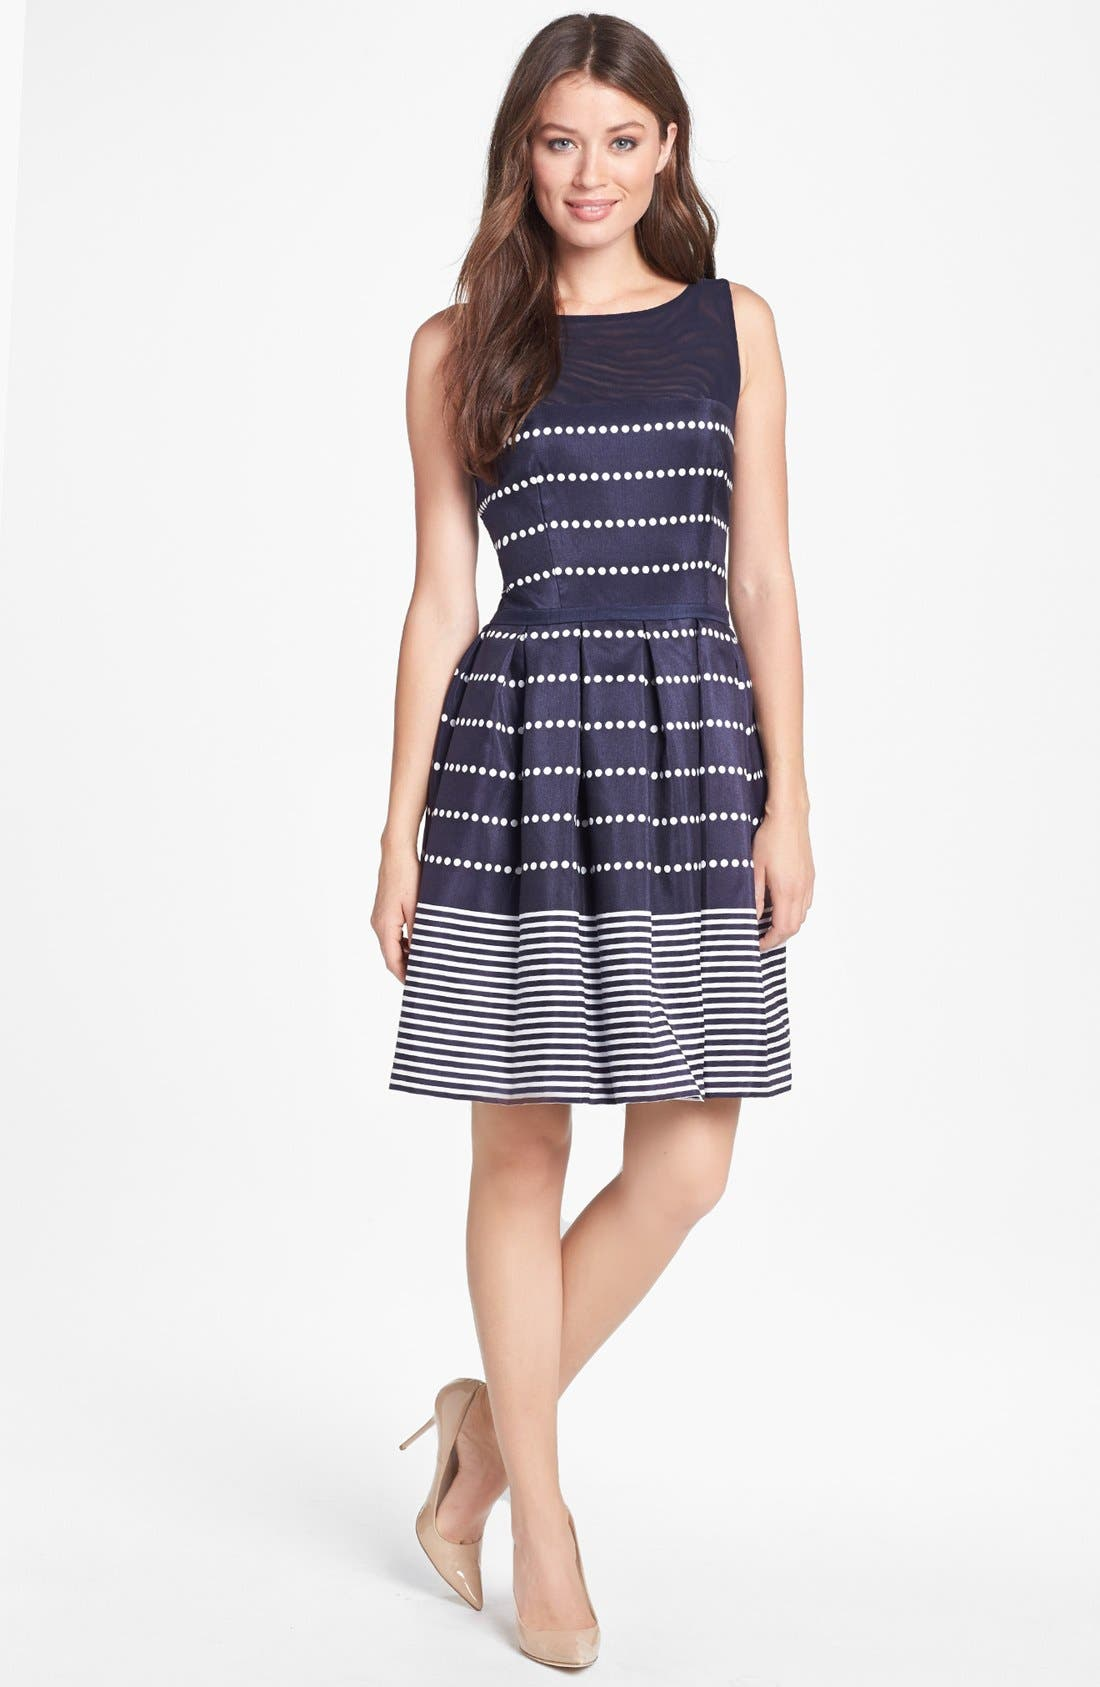 Main Image - Taylor Dresses Polka Dot Stripe Fit & Flare Dress